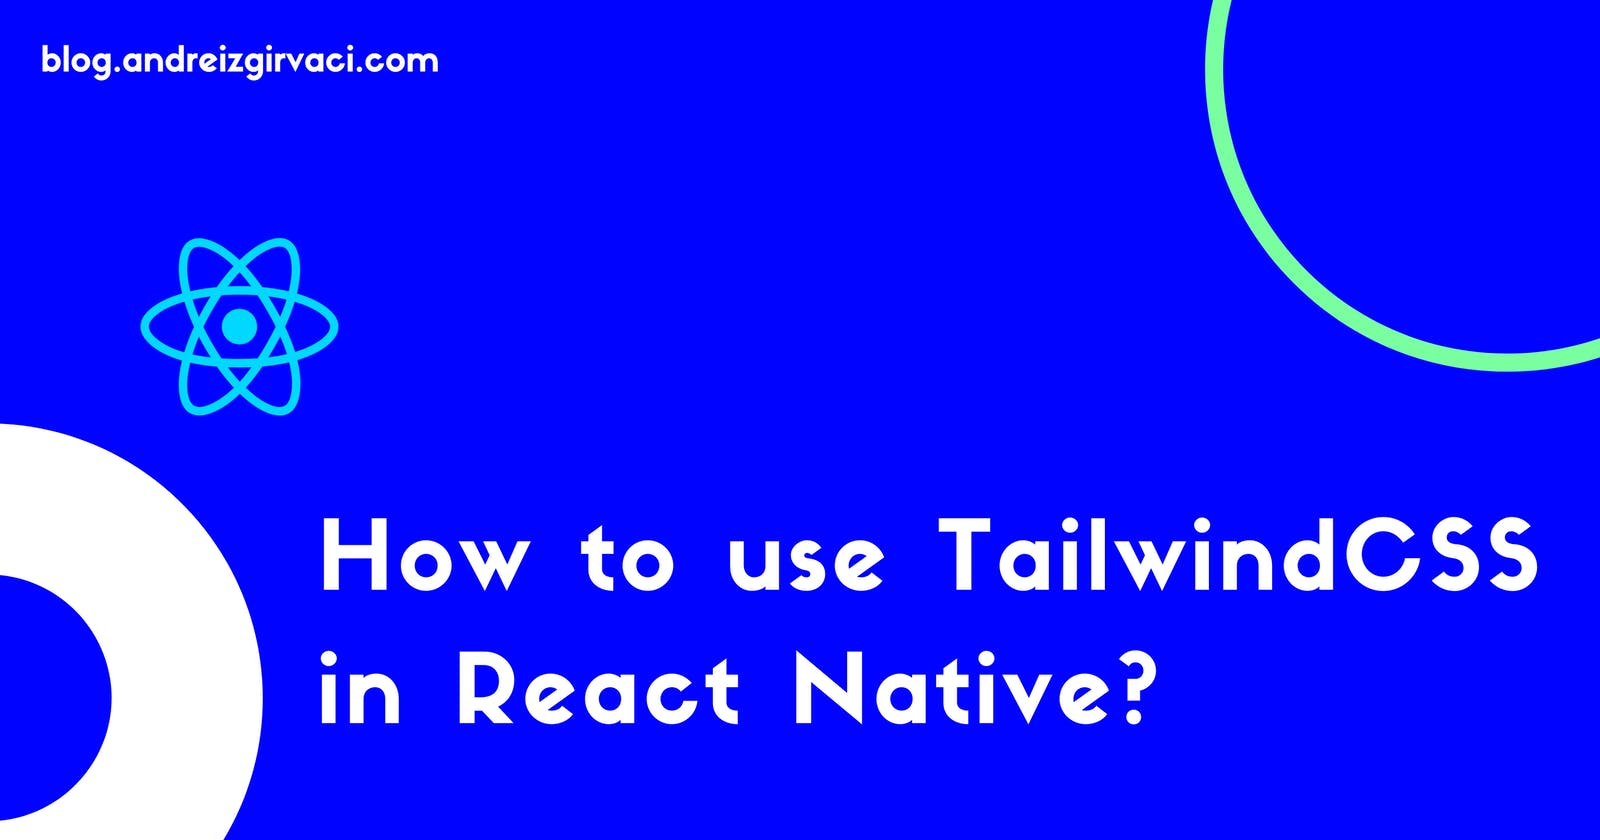 How to use TailwindCSS in React Native? 🦎